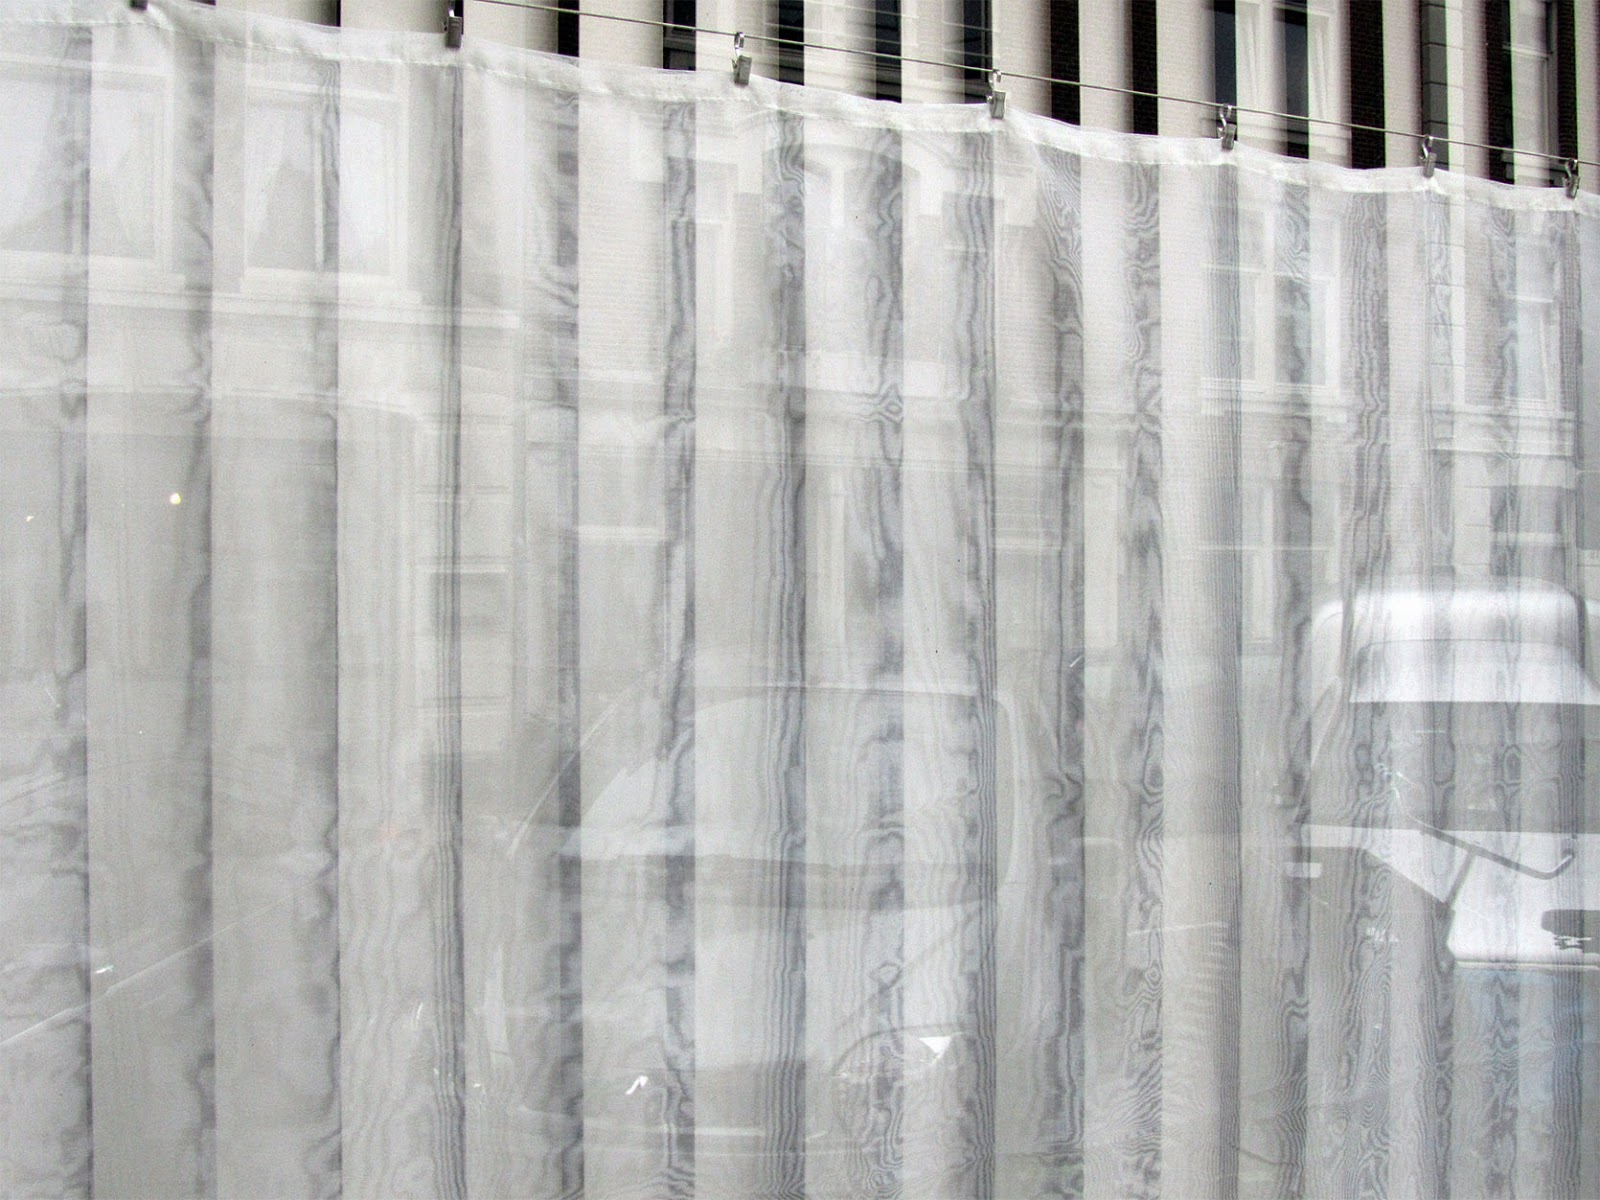 white curtains and lamellae